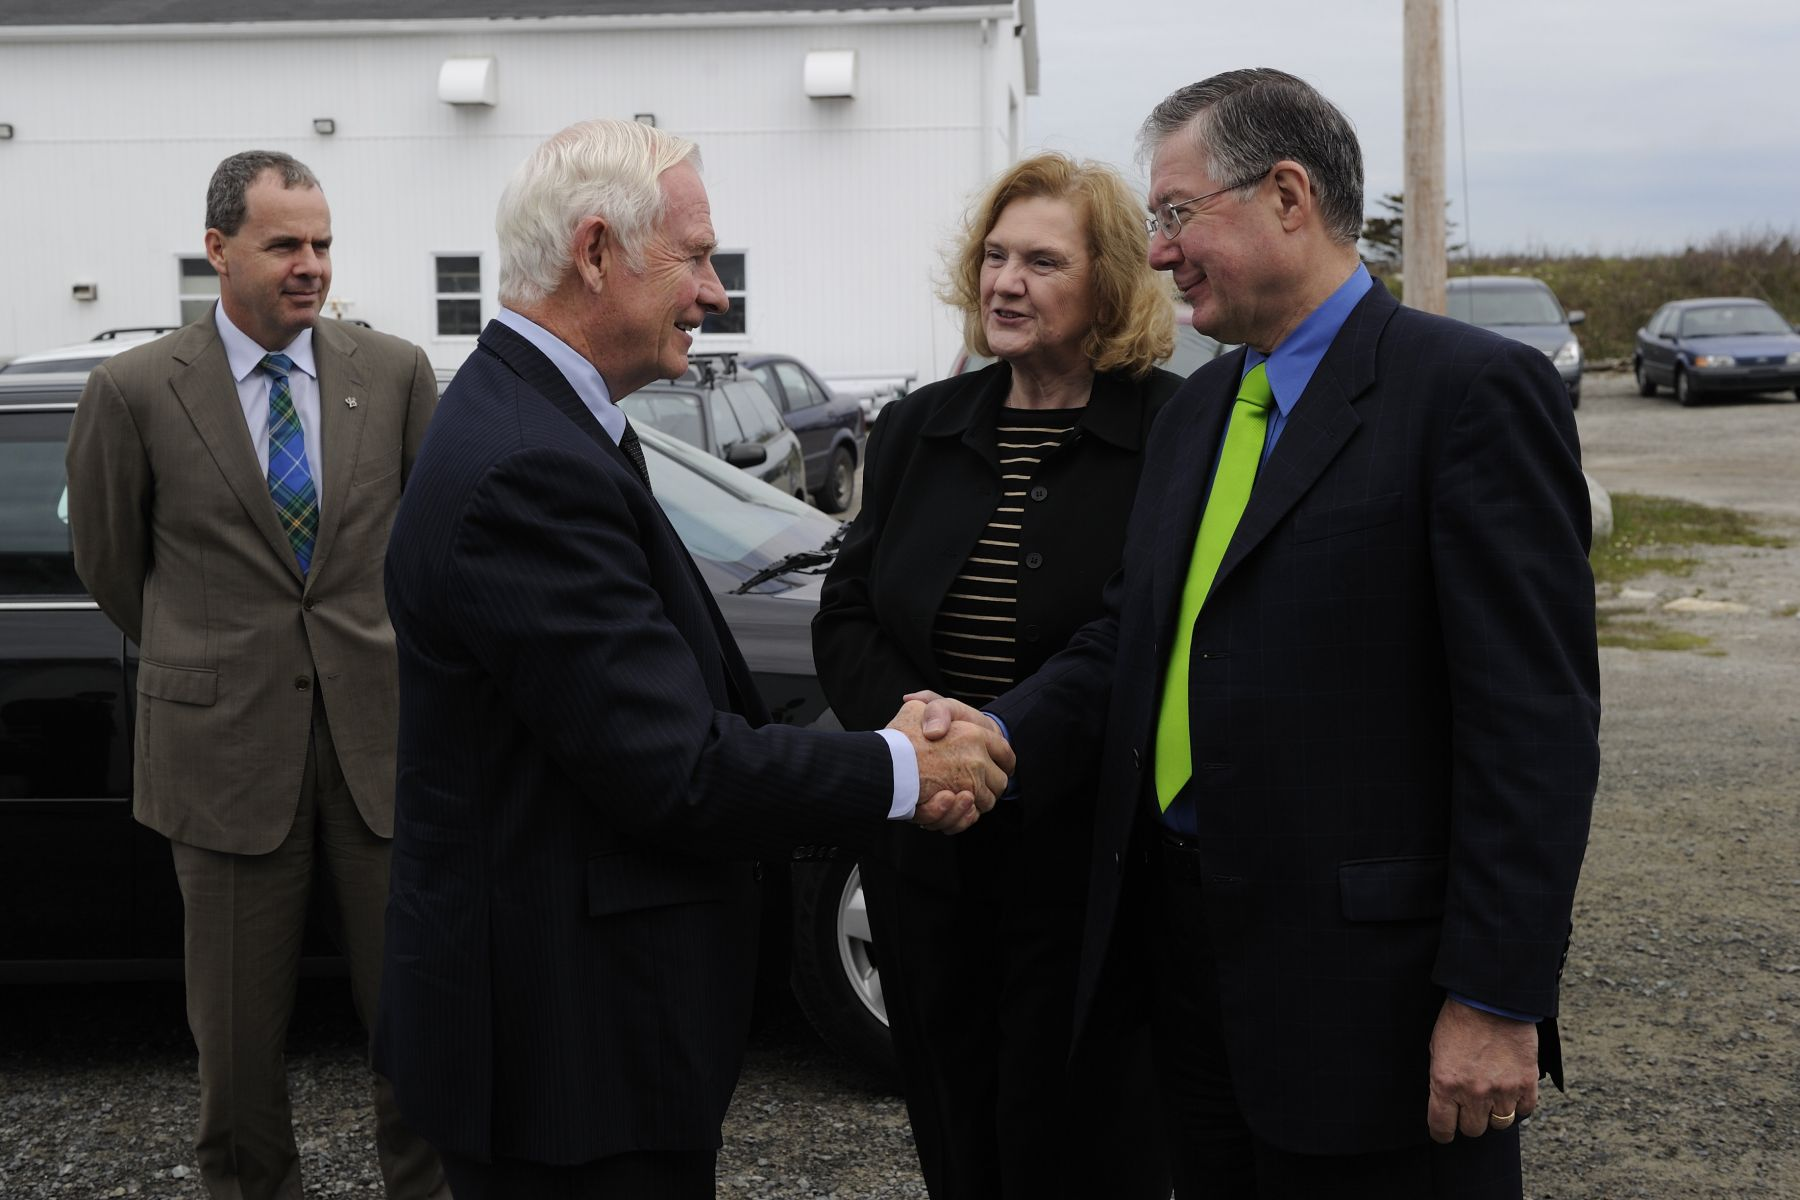 The Governor General then headed to the National Research Council Marine Research Station in Ketch Harbour to meet with scientists who are involved in the algal biofuels program.